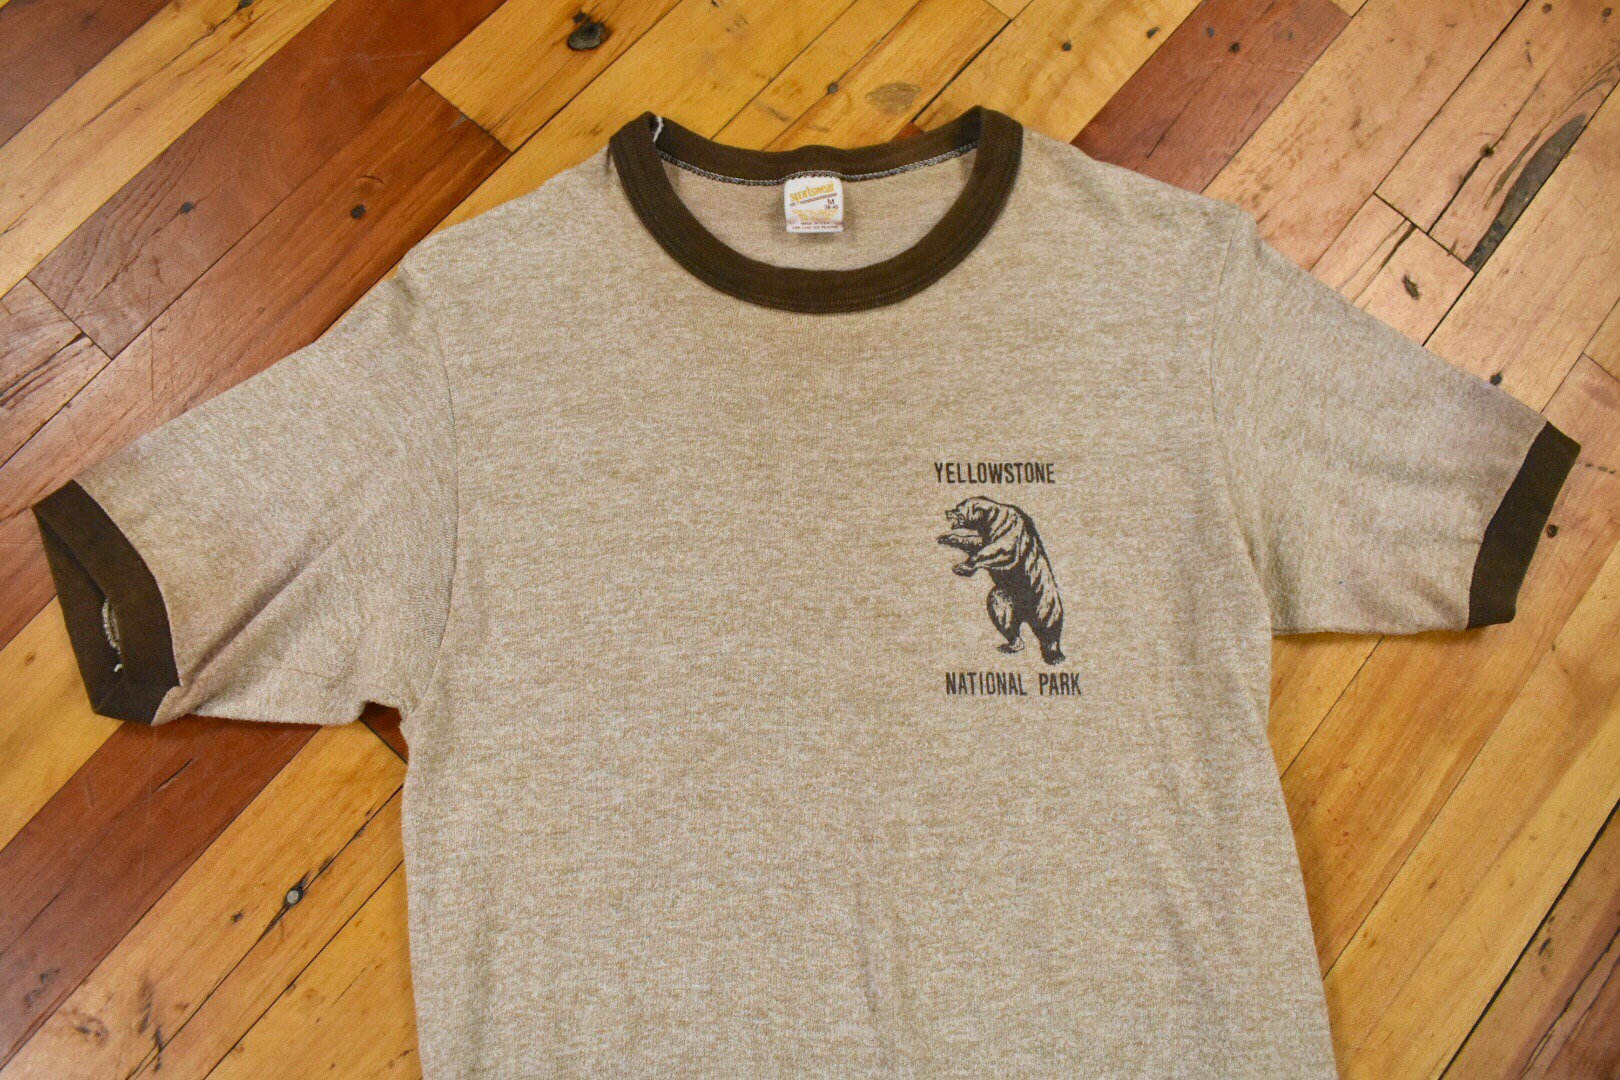 1970s Mens Shirt Styles – Vintage 70s Shirts for Guys 70S 80S Yellowstone XsSmall Ringer Tee Vintage National Park T-Shirt $20.00 AT vintagedancer.com